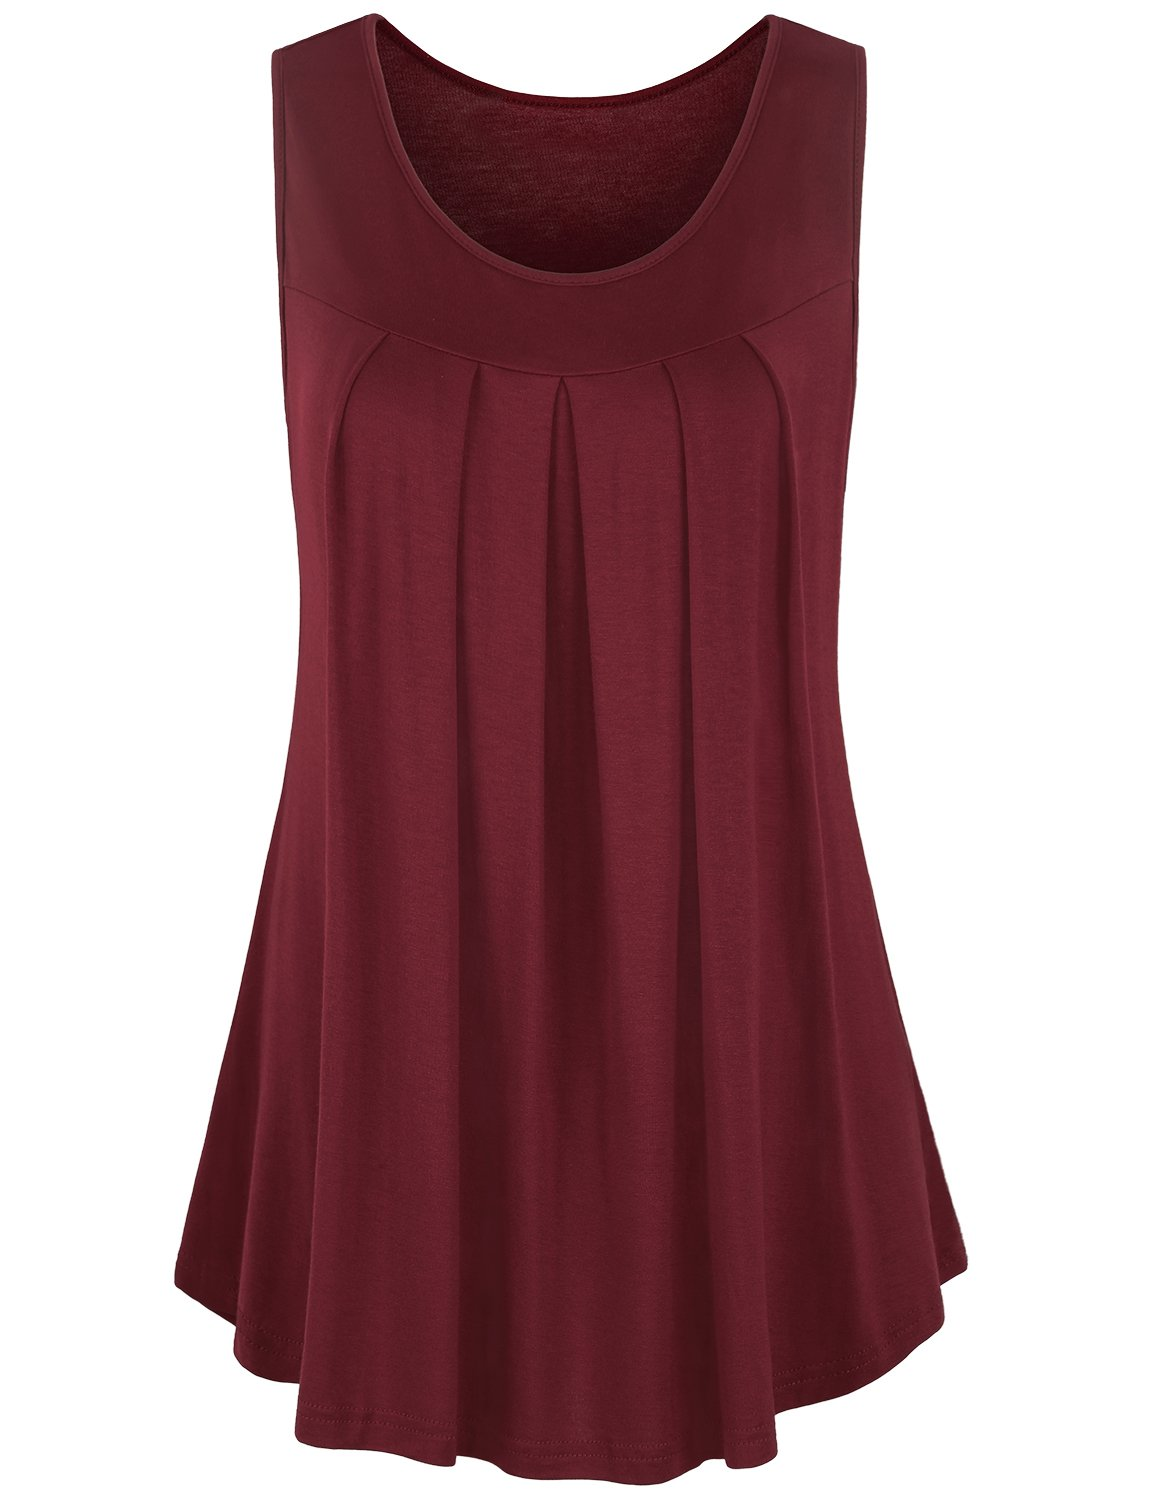 Misswor Sleeveless Tops for Women Womans Scoop Neck Pleated Front Country Style Soft Layered Tunic Tank Wine M